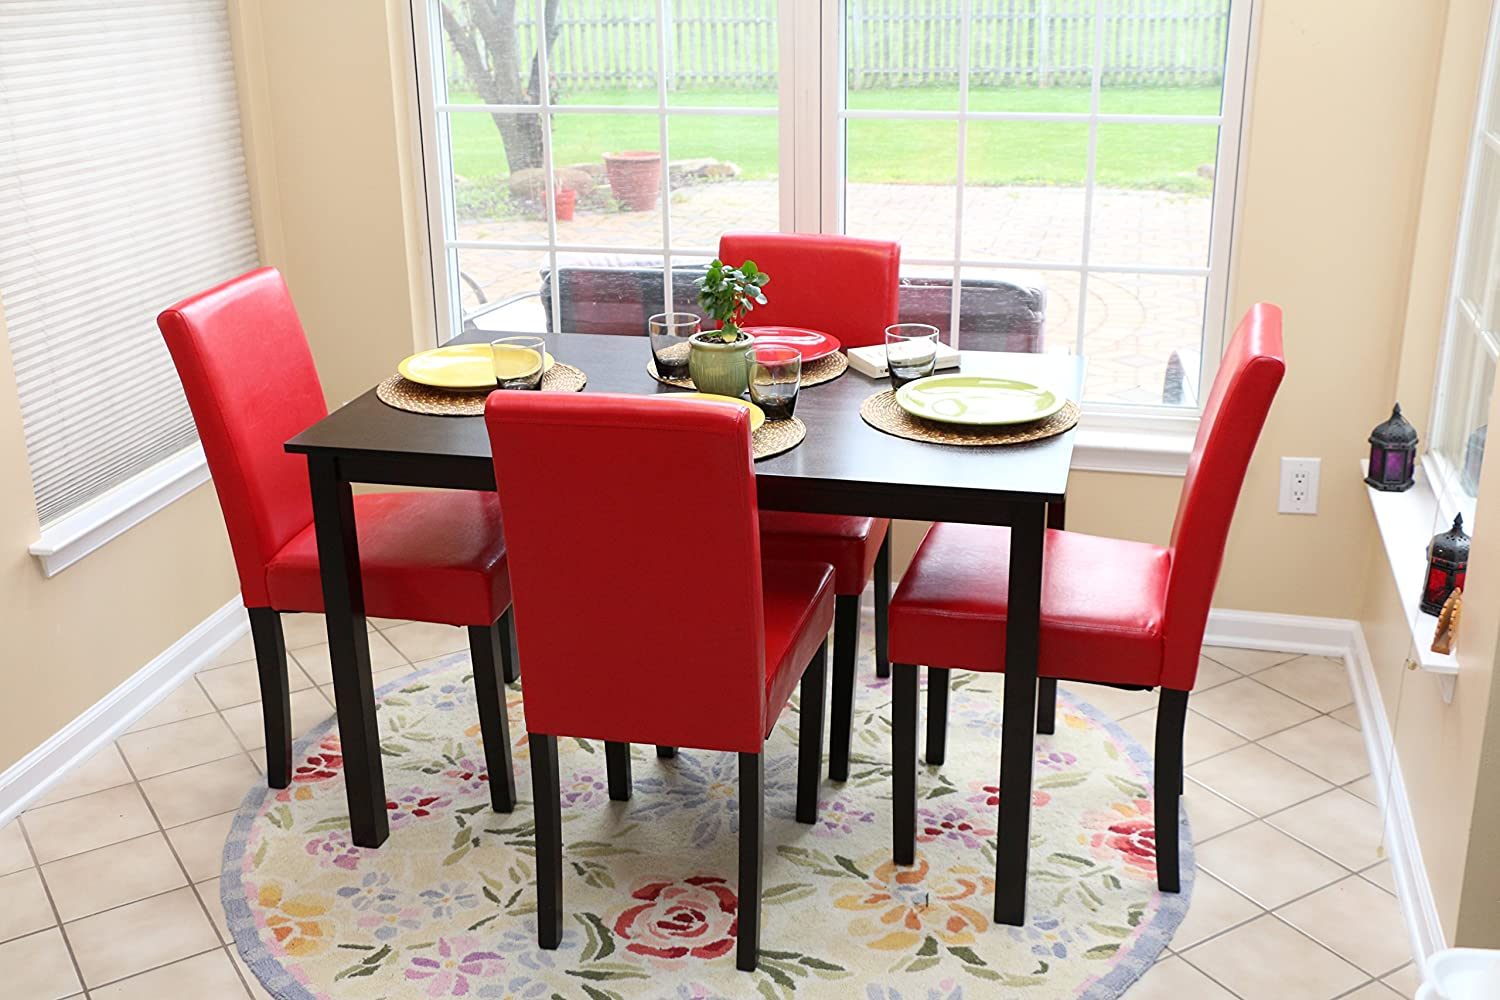 Amazon Com Home Life 5 Pc Red Leather 4 Person Table And Chairs Red Dining Dinette Red Parson Chair Table Chair Sets